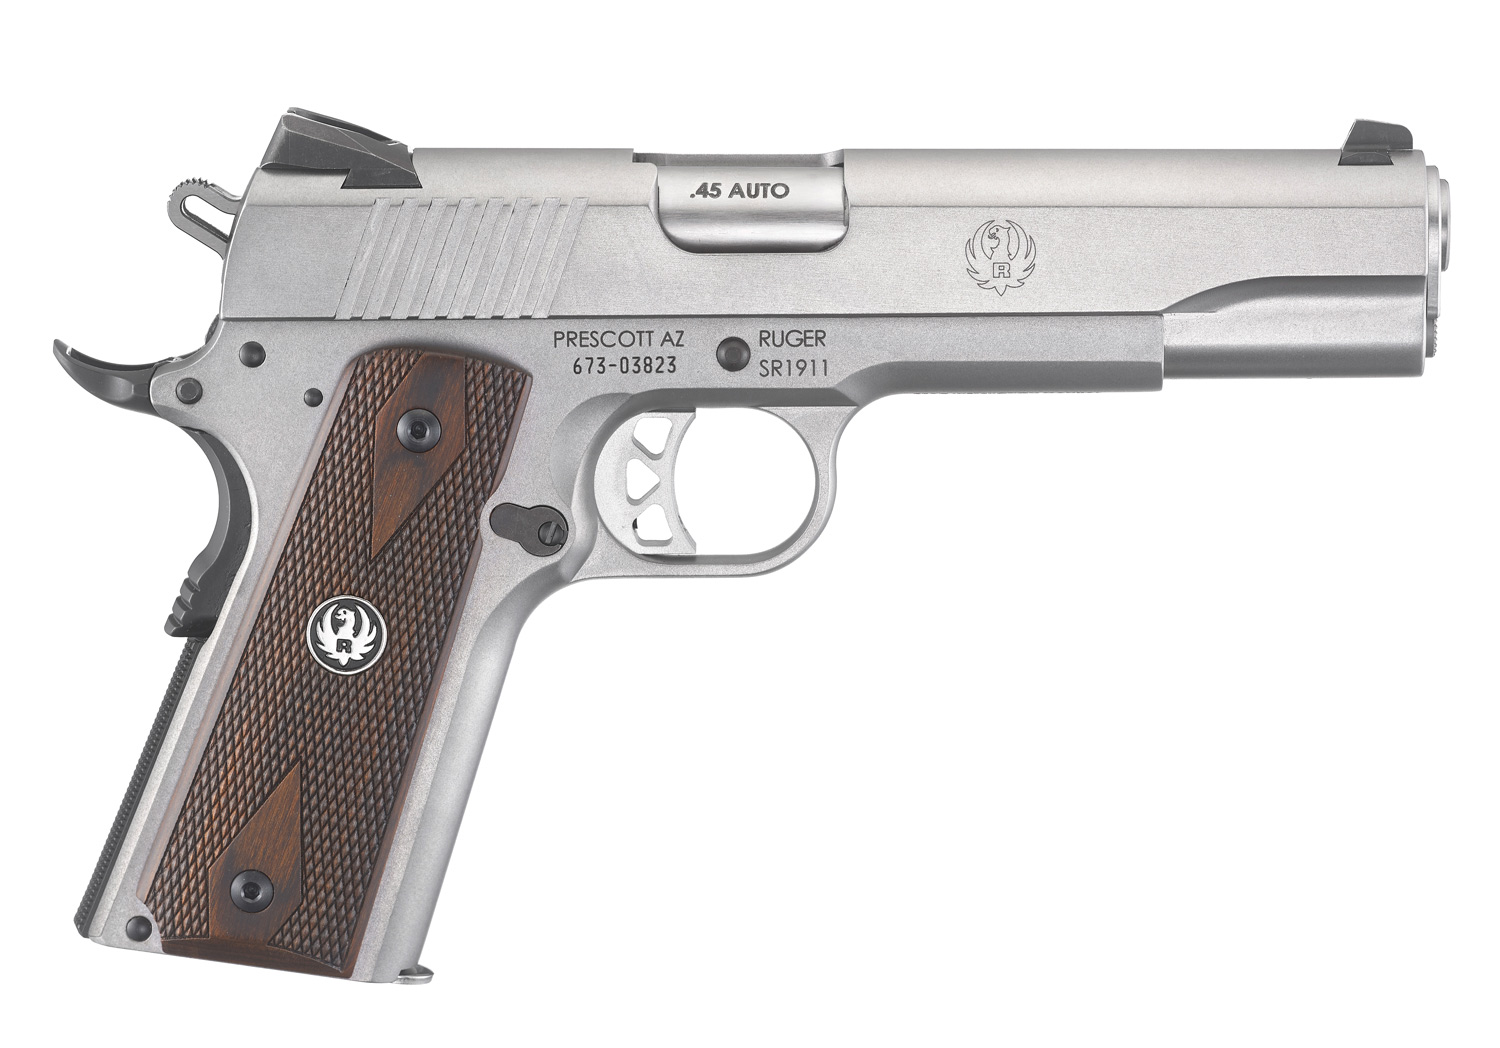 Report from SHOT Show: Ruger's Newest Products